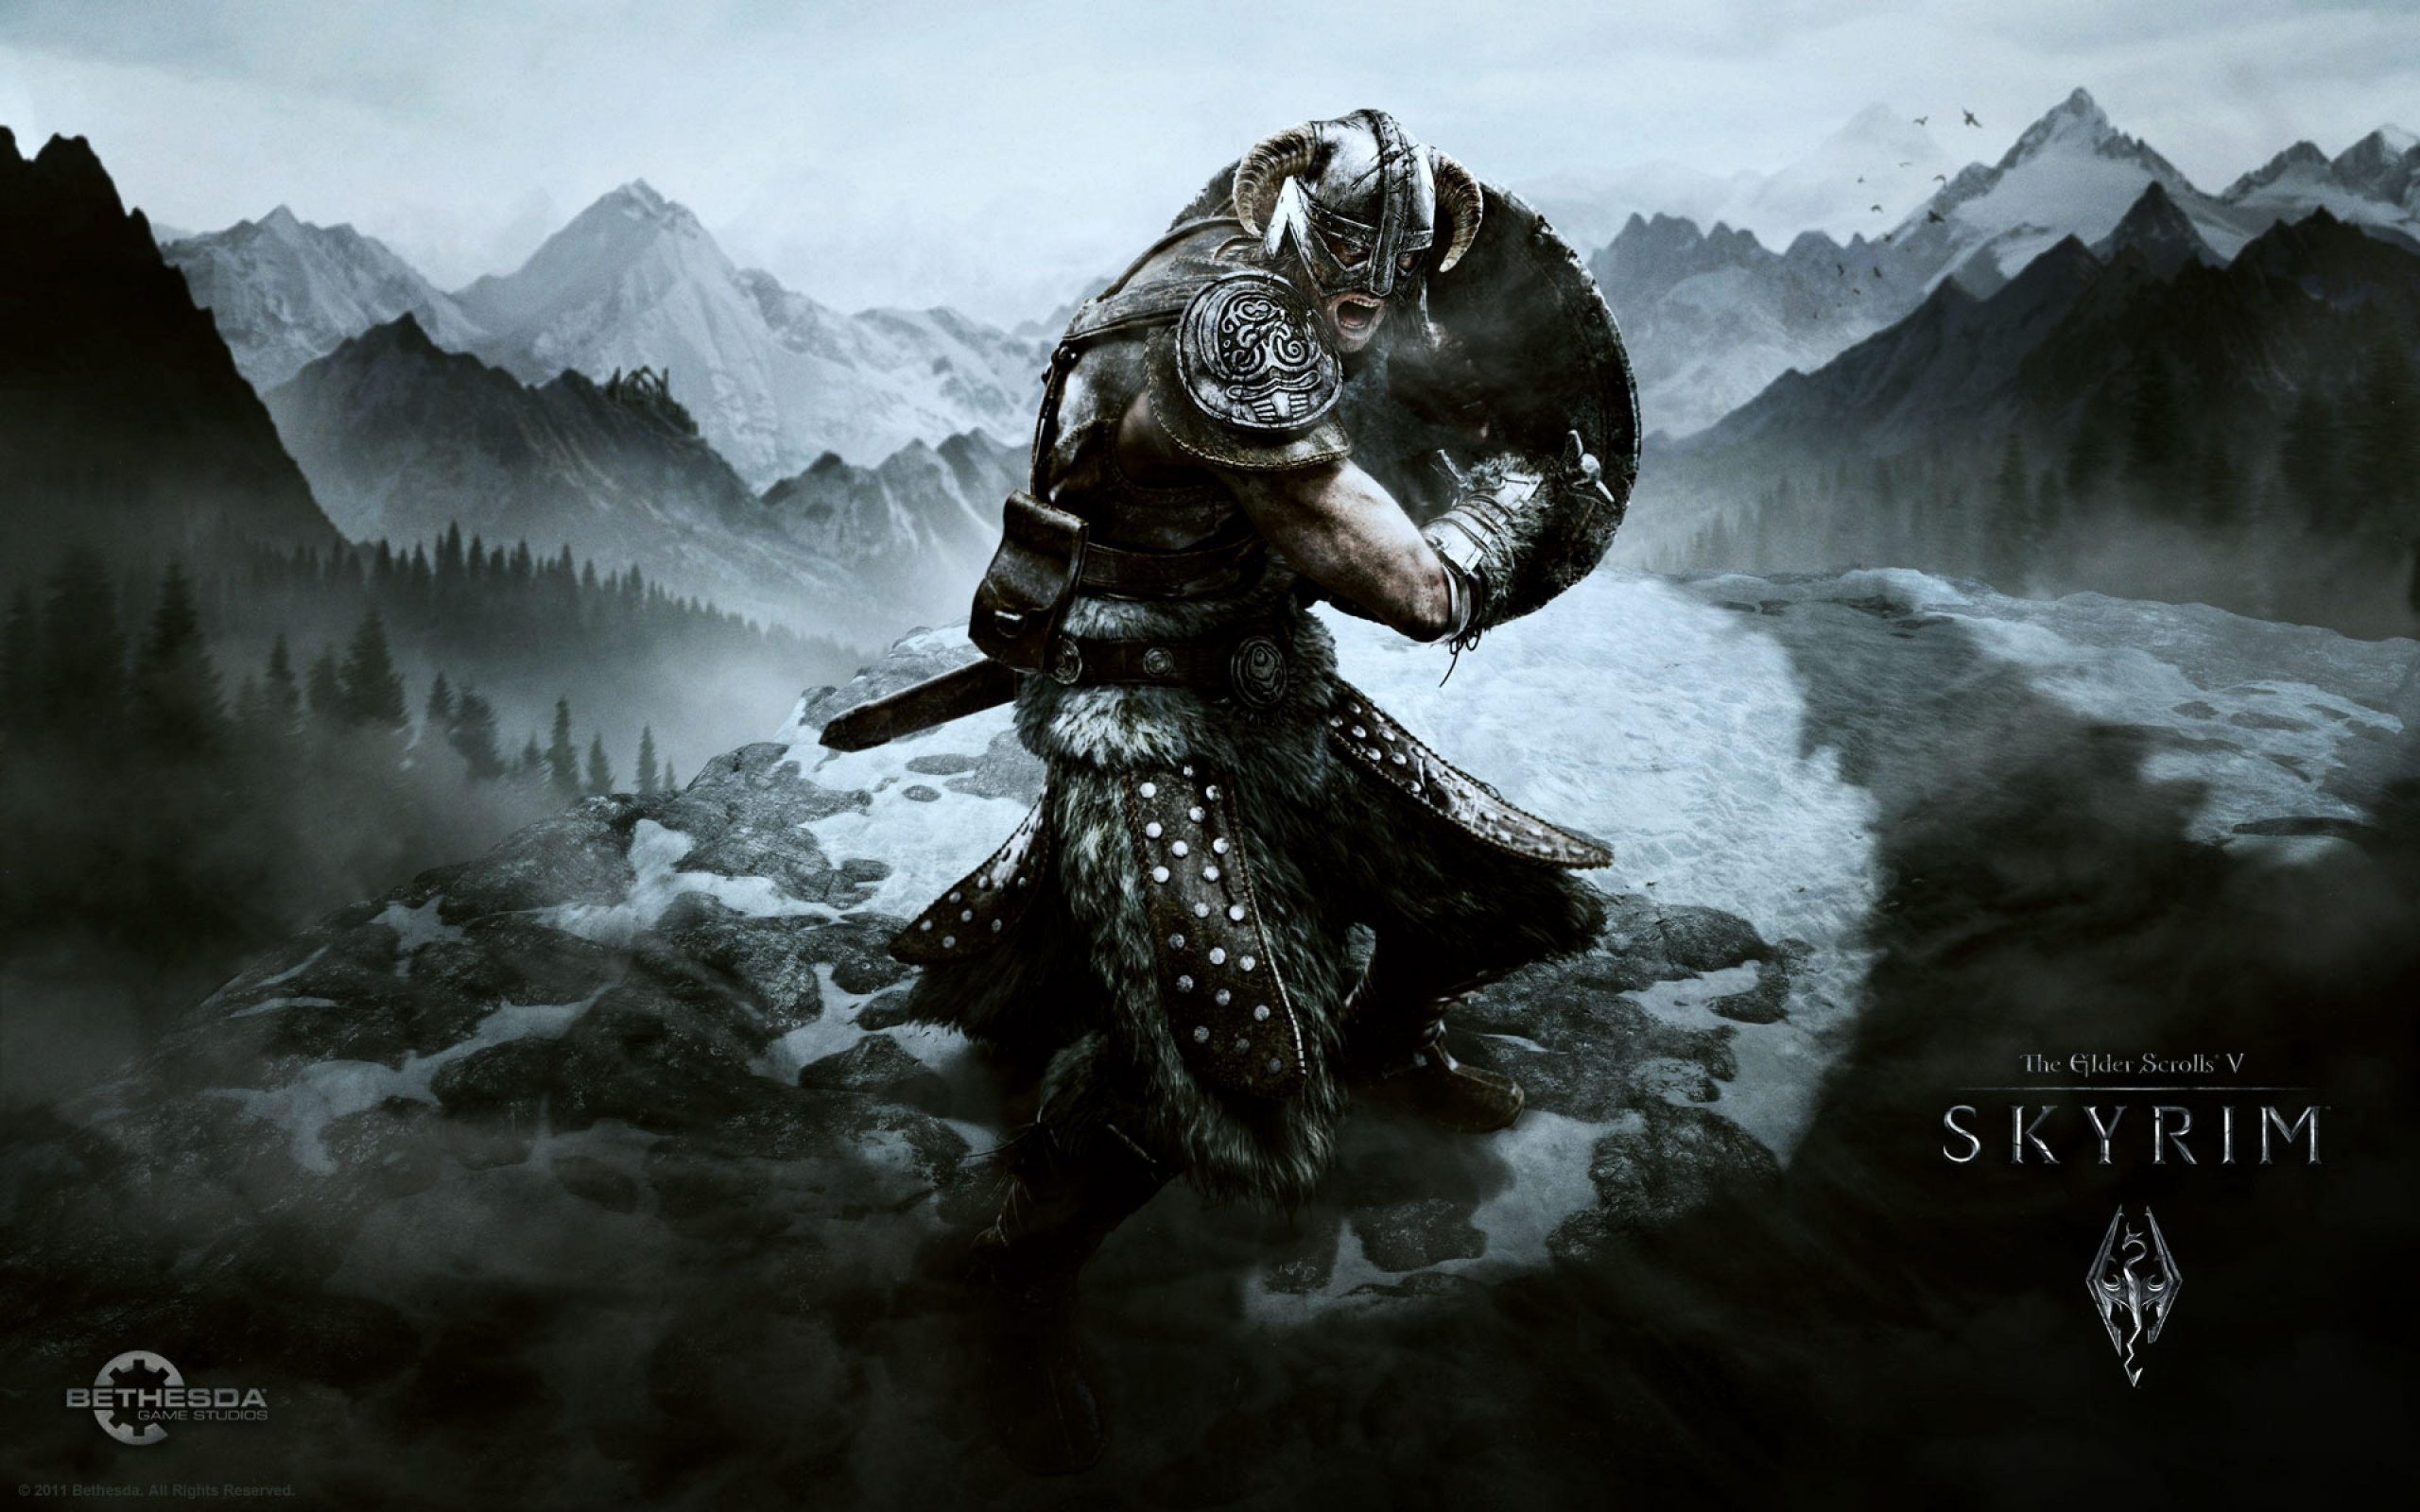 Facing Skyrim failed to initialize renderer error? We have some fixes for you